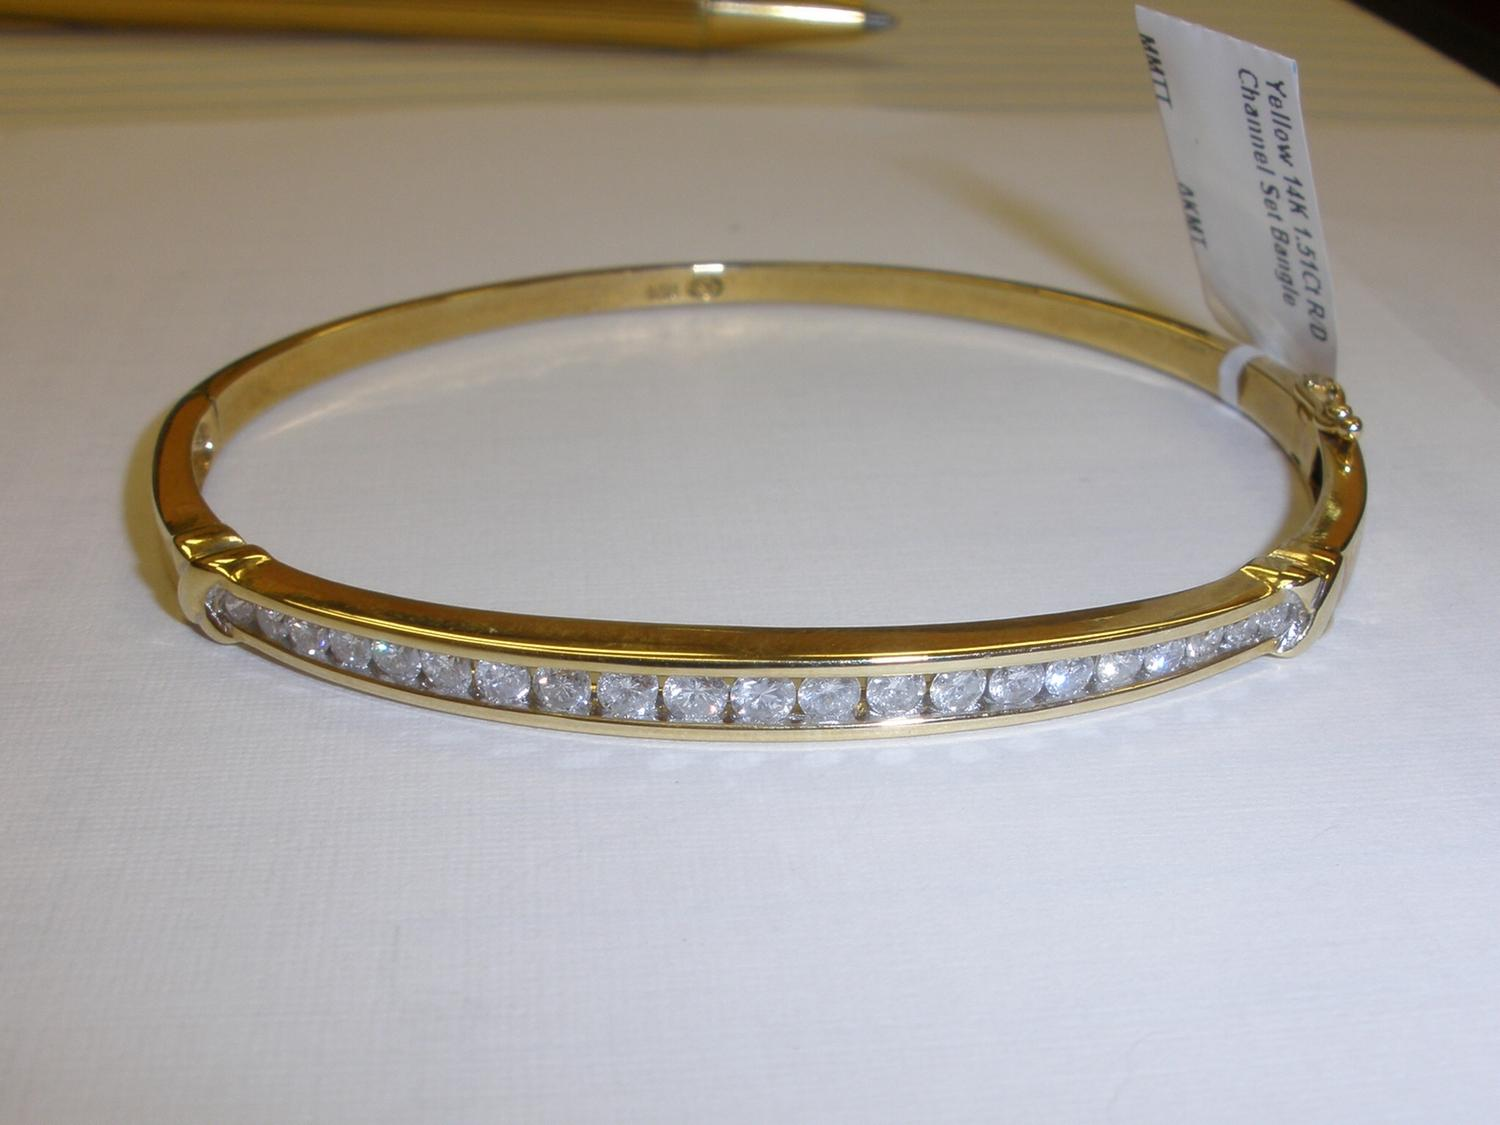 bangles mainye bracelet luxurman designer by carat bangle women diamond for gold